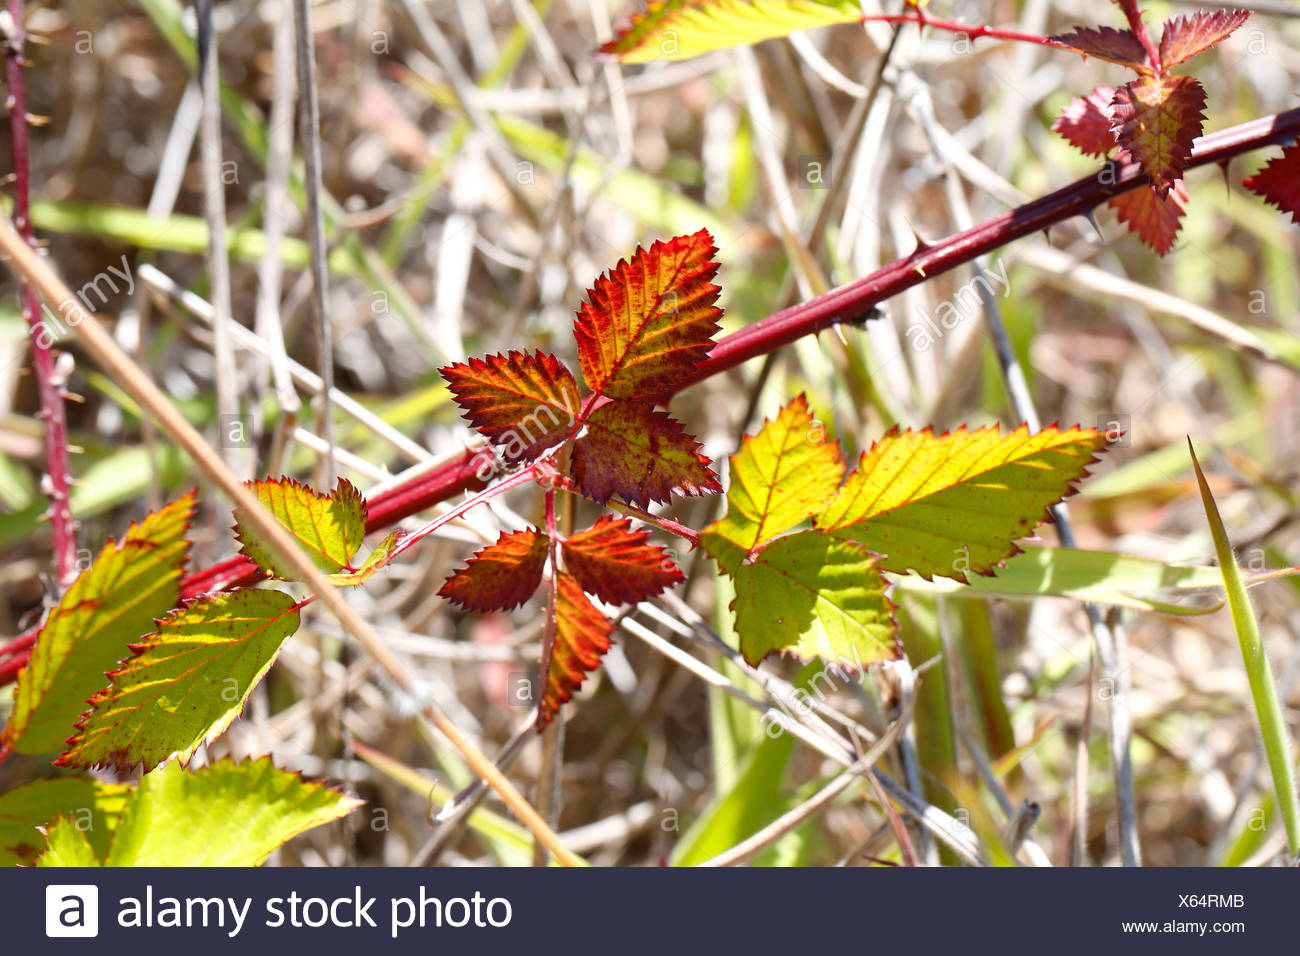 Tropical Flush, a pigment disorder on blackberry leaves, rain forest, Big Island, Hawaii, USA - Stock Image